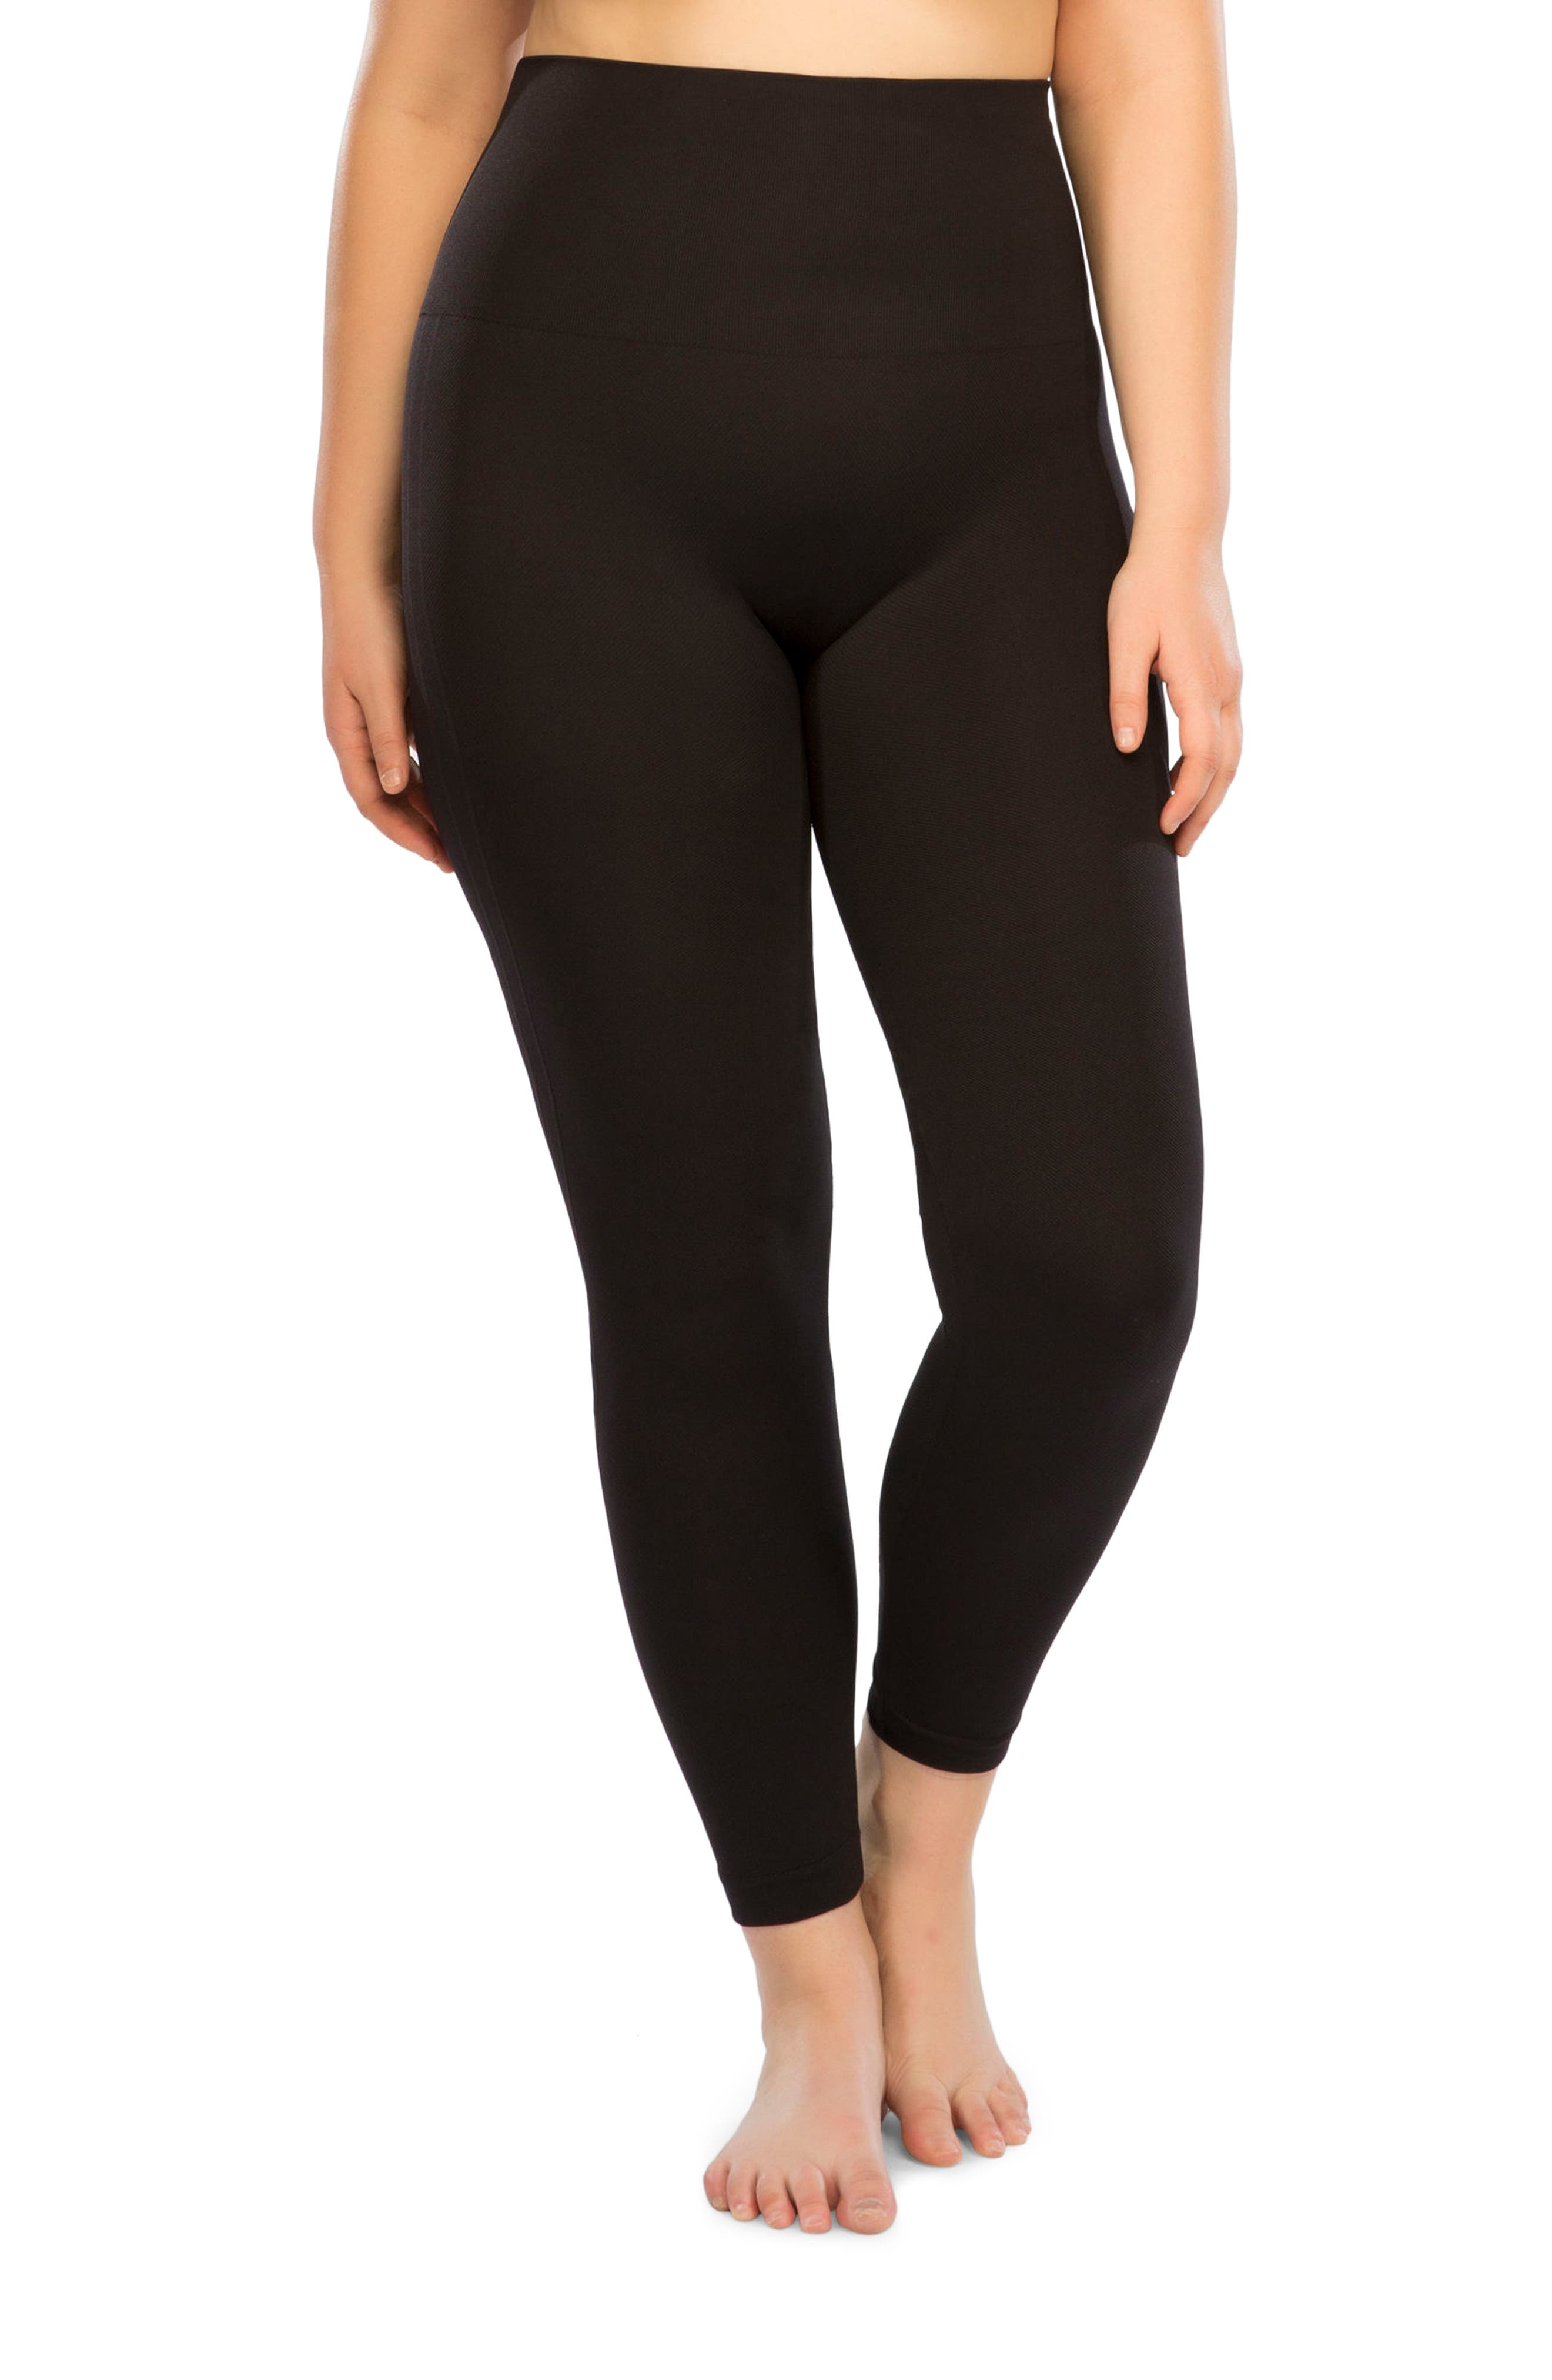 Alternate Image 1 Selected - SPANX® Look At Me Now Seamless Leggings (Plus Size)